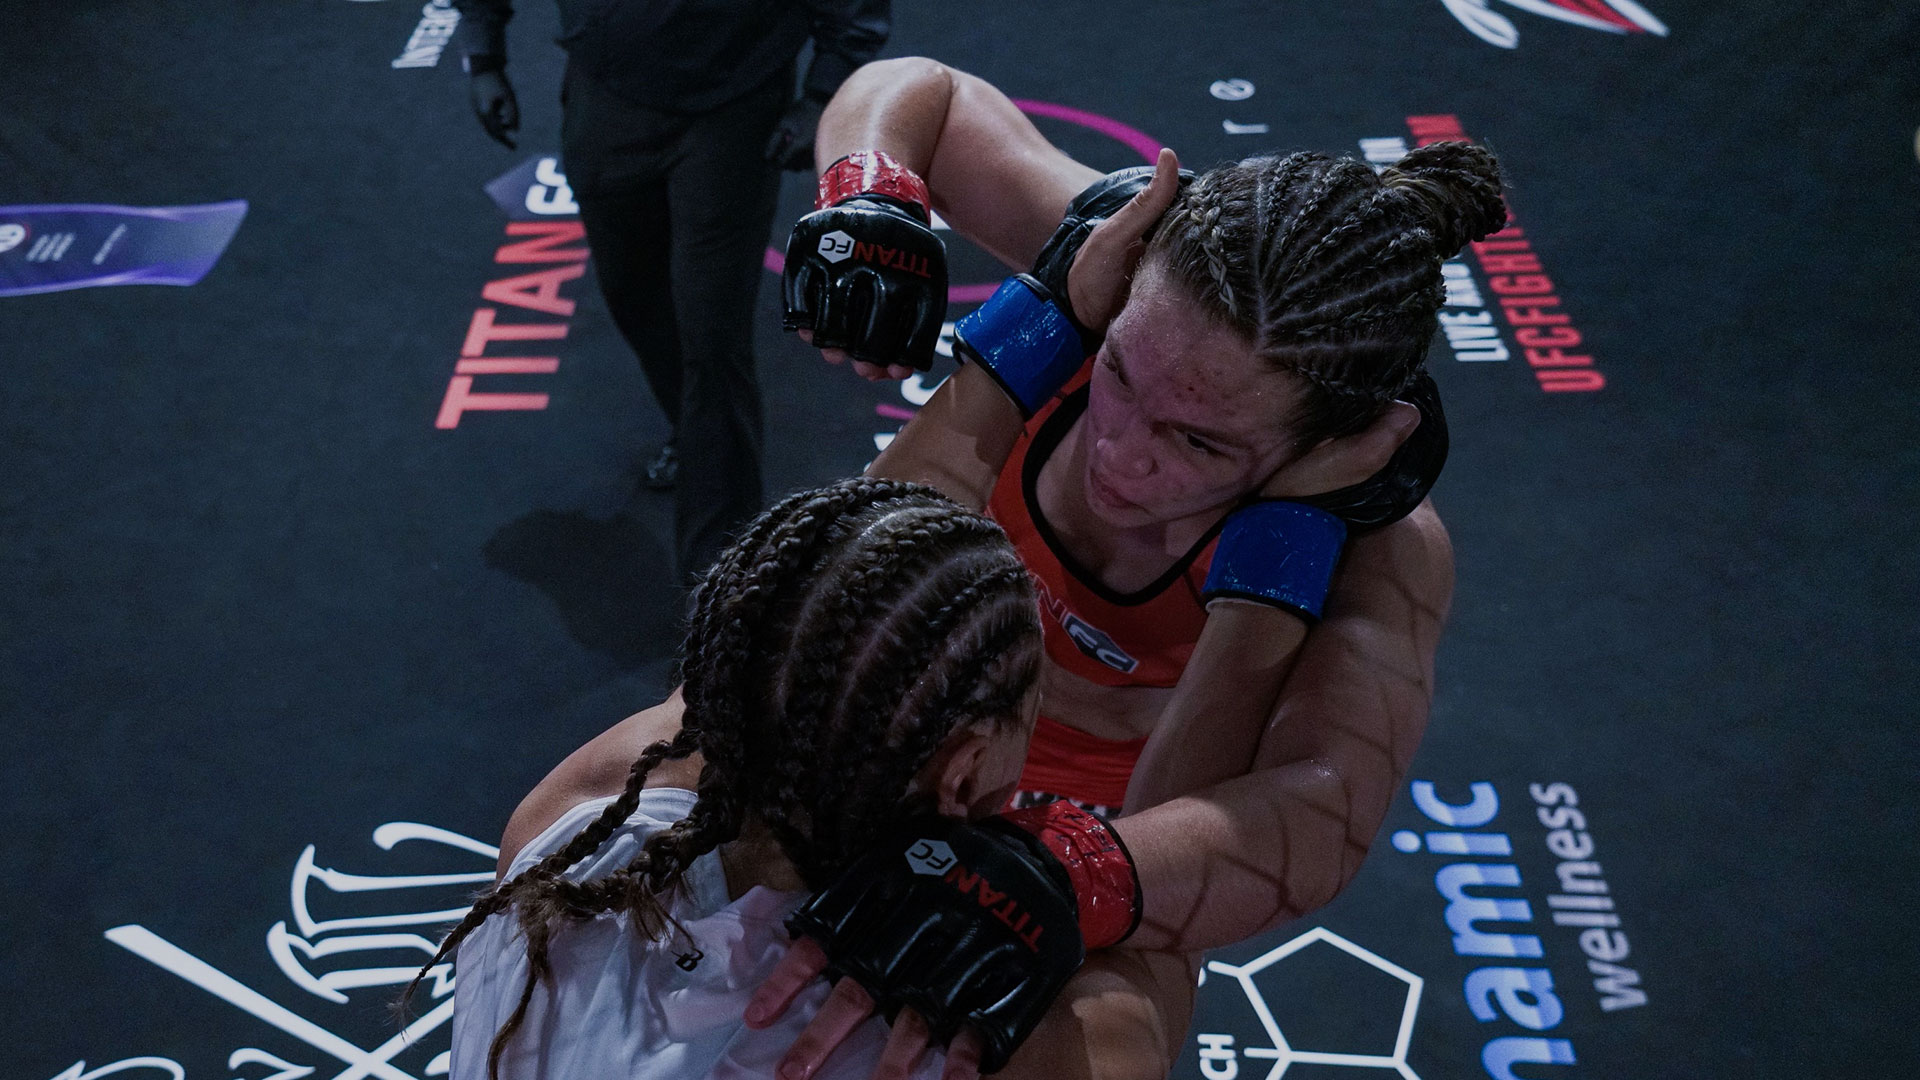 Evelyn Martins throws a punch against opponent Serena DeJesus at Titan FC